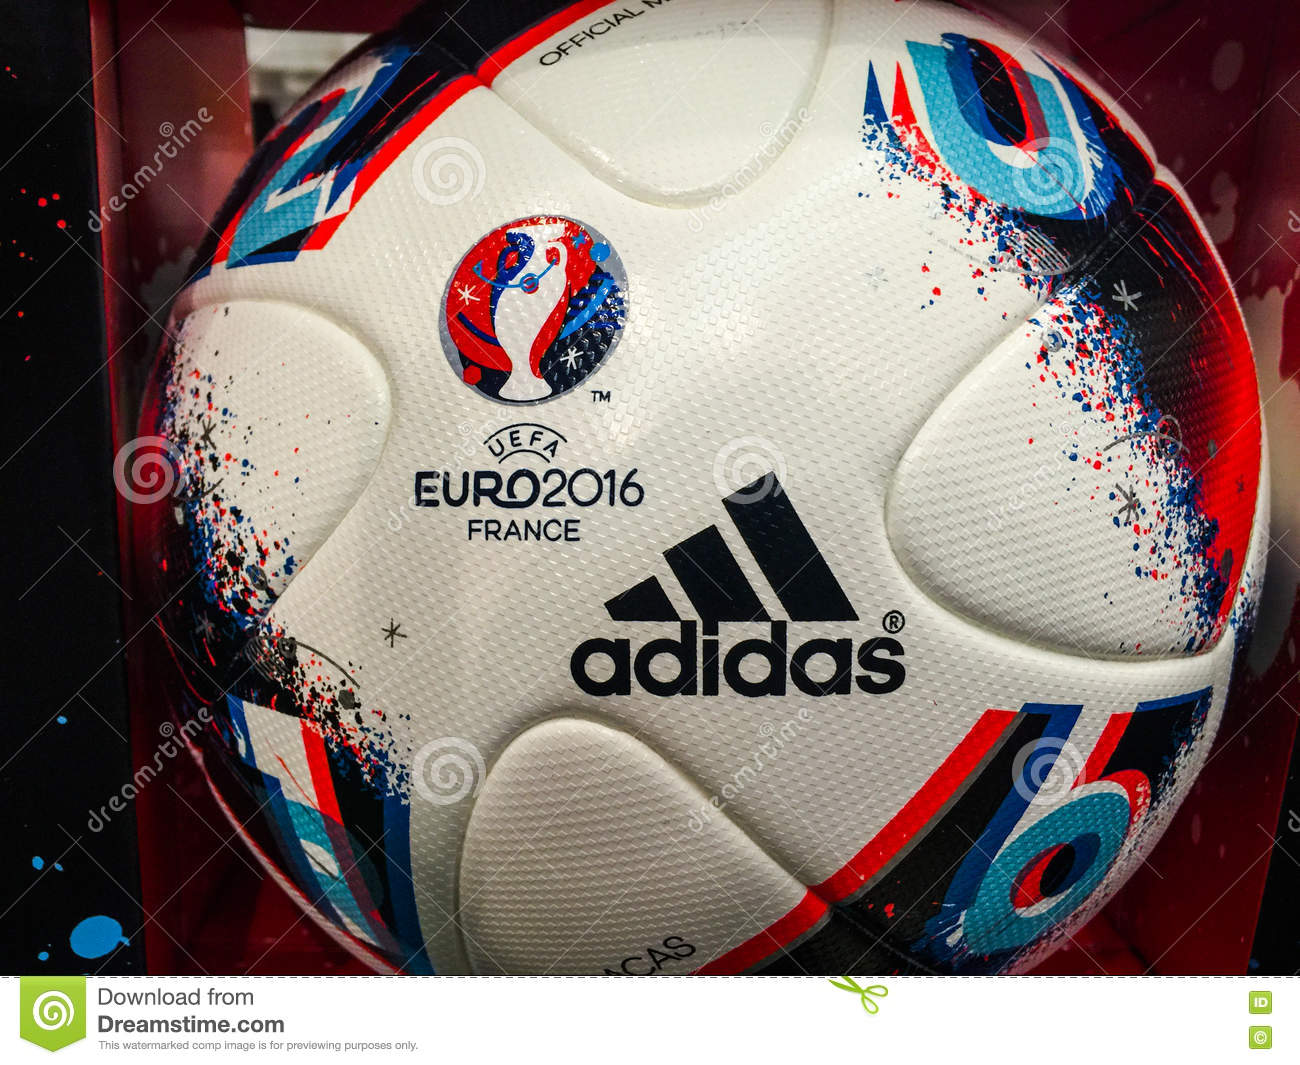 adidas beau jeu official match ball for the uefa euro 2016. Black Bedroom Furniture Sets. Home Design Ideas